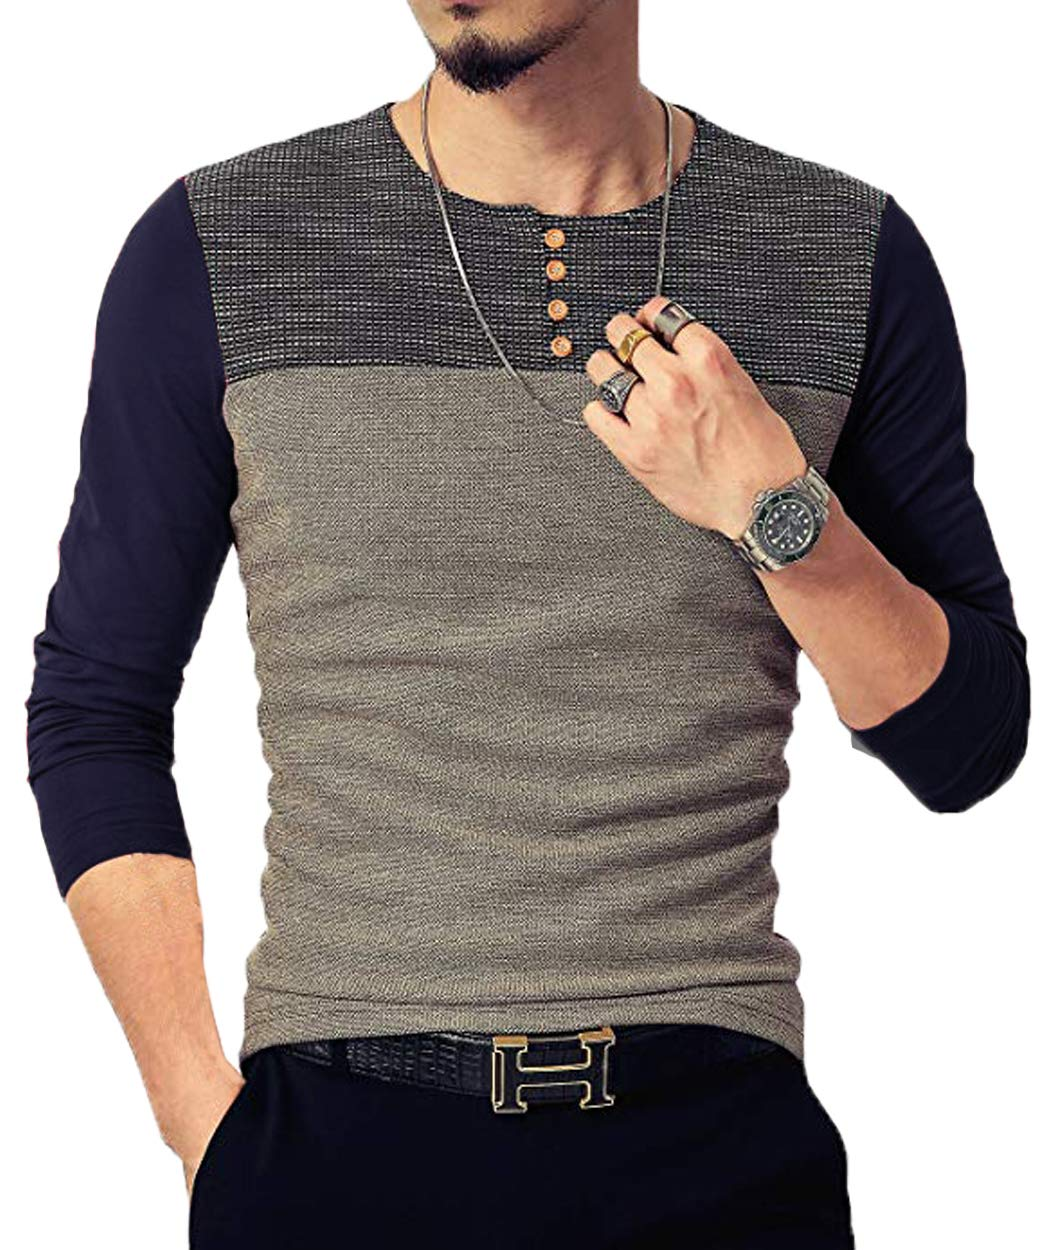 Neoyowo Mens Patchwork Shirt Long Sleeve Contrast Color T-Shirt Casual Stitching Buttons Henley Tops (Navy Blue, S)